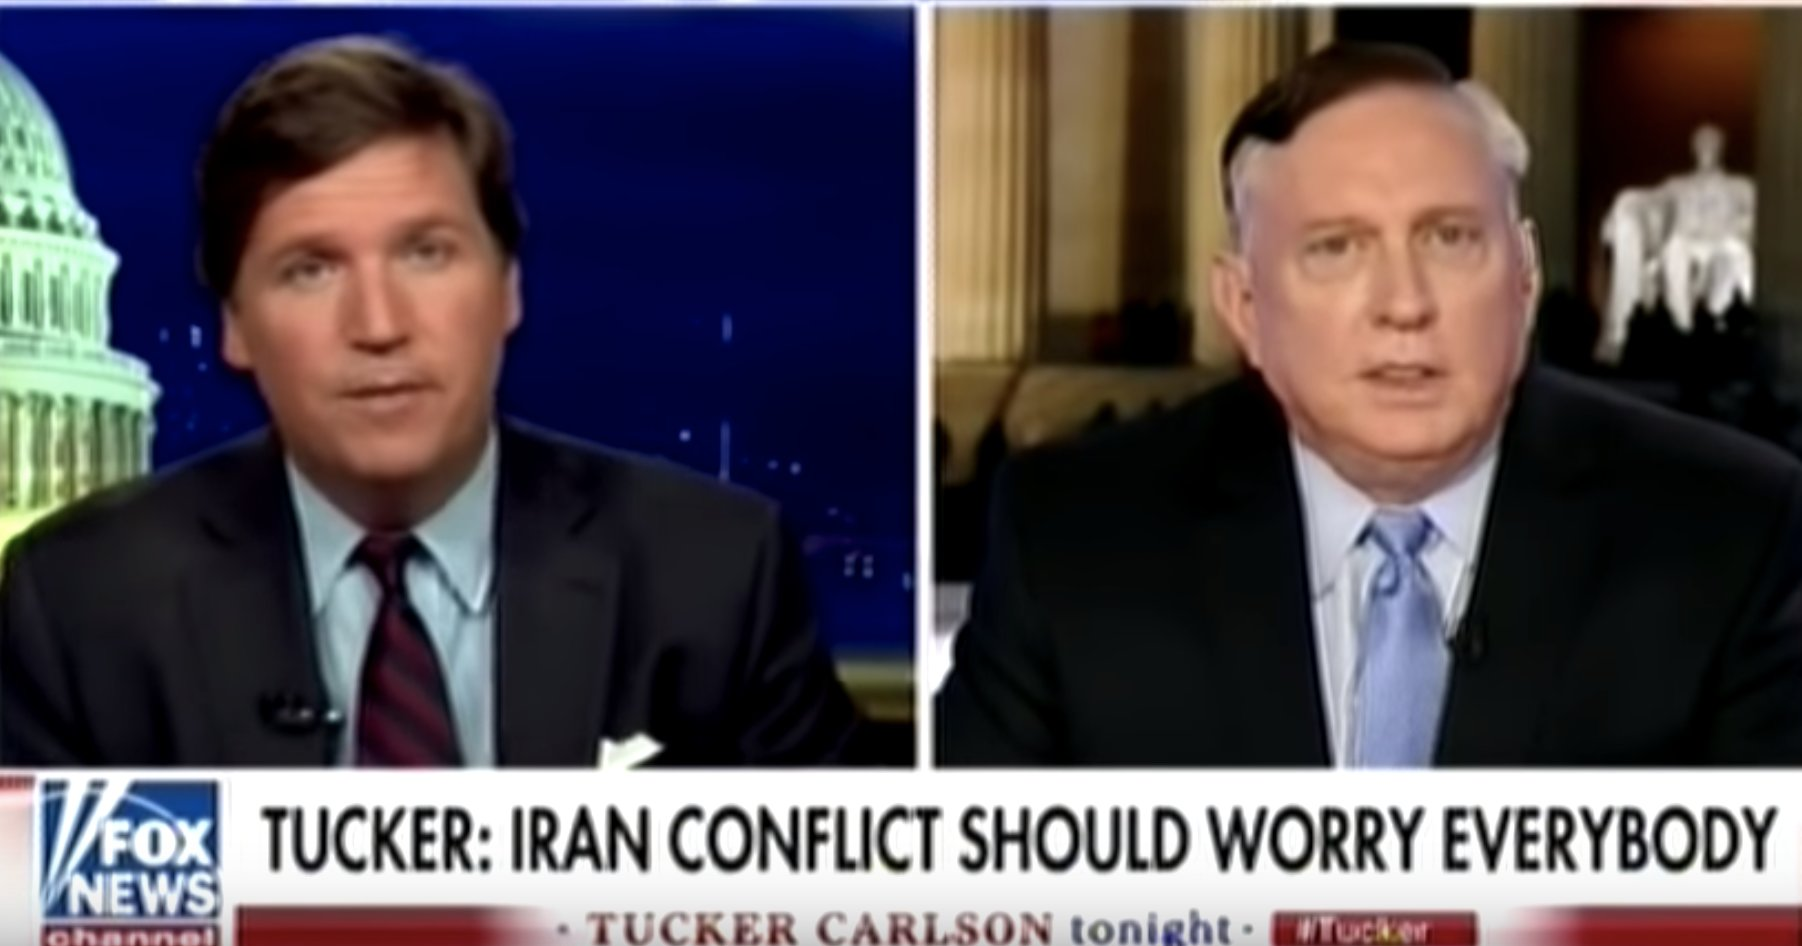 Guest on Tucker Carlson on Fox News show says Gulf of Tonkin incident was a…FALSE FLAG!